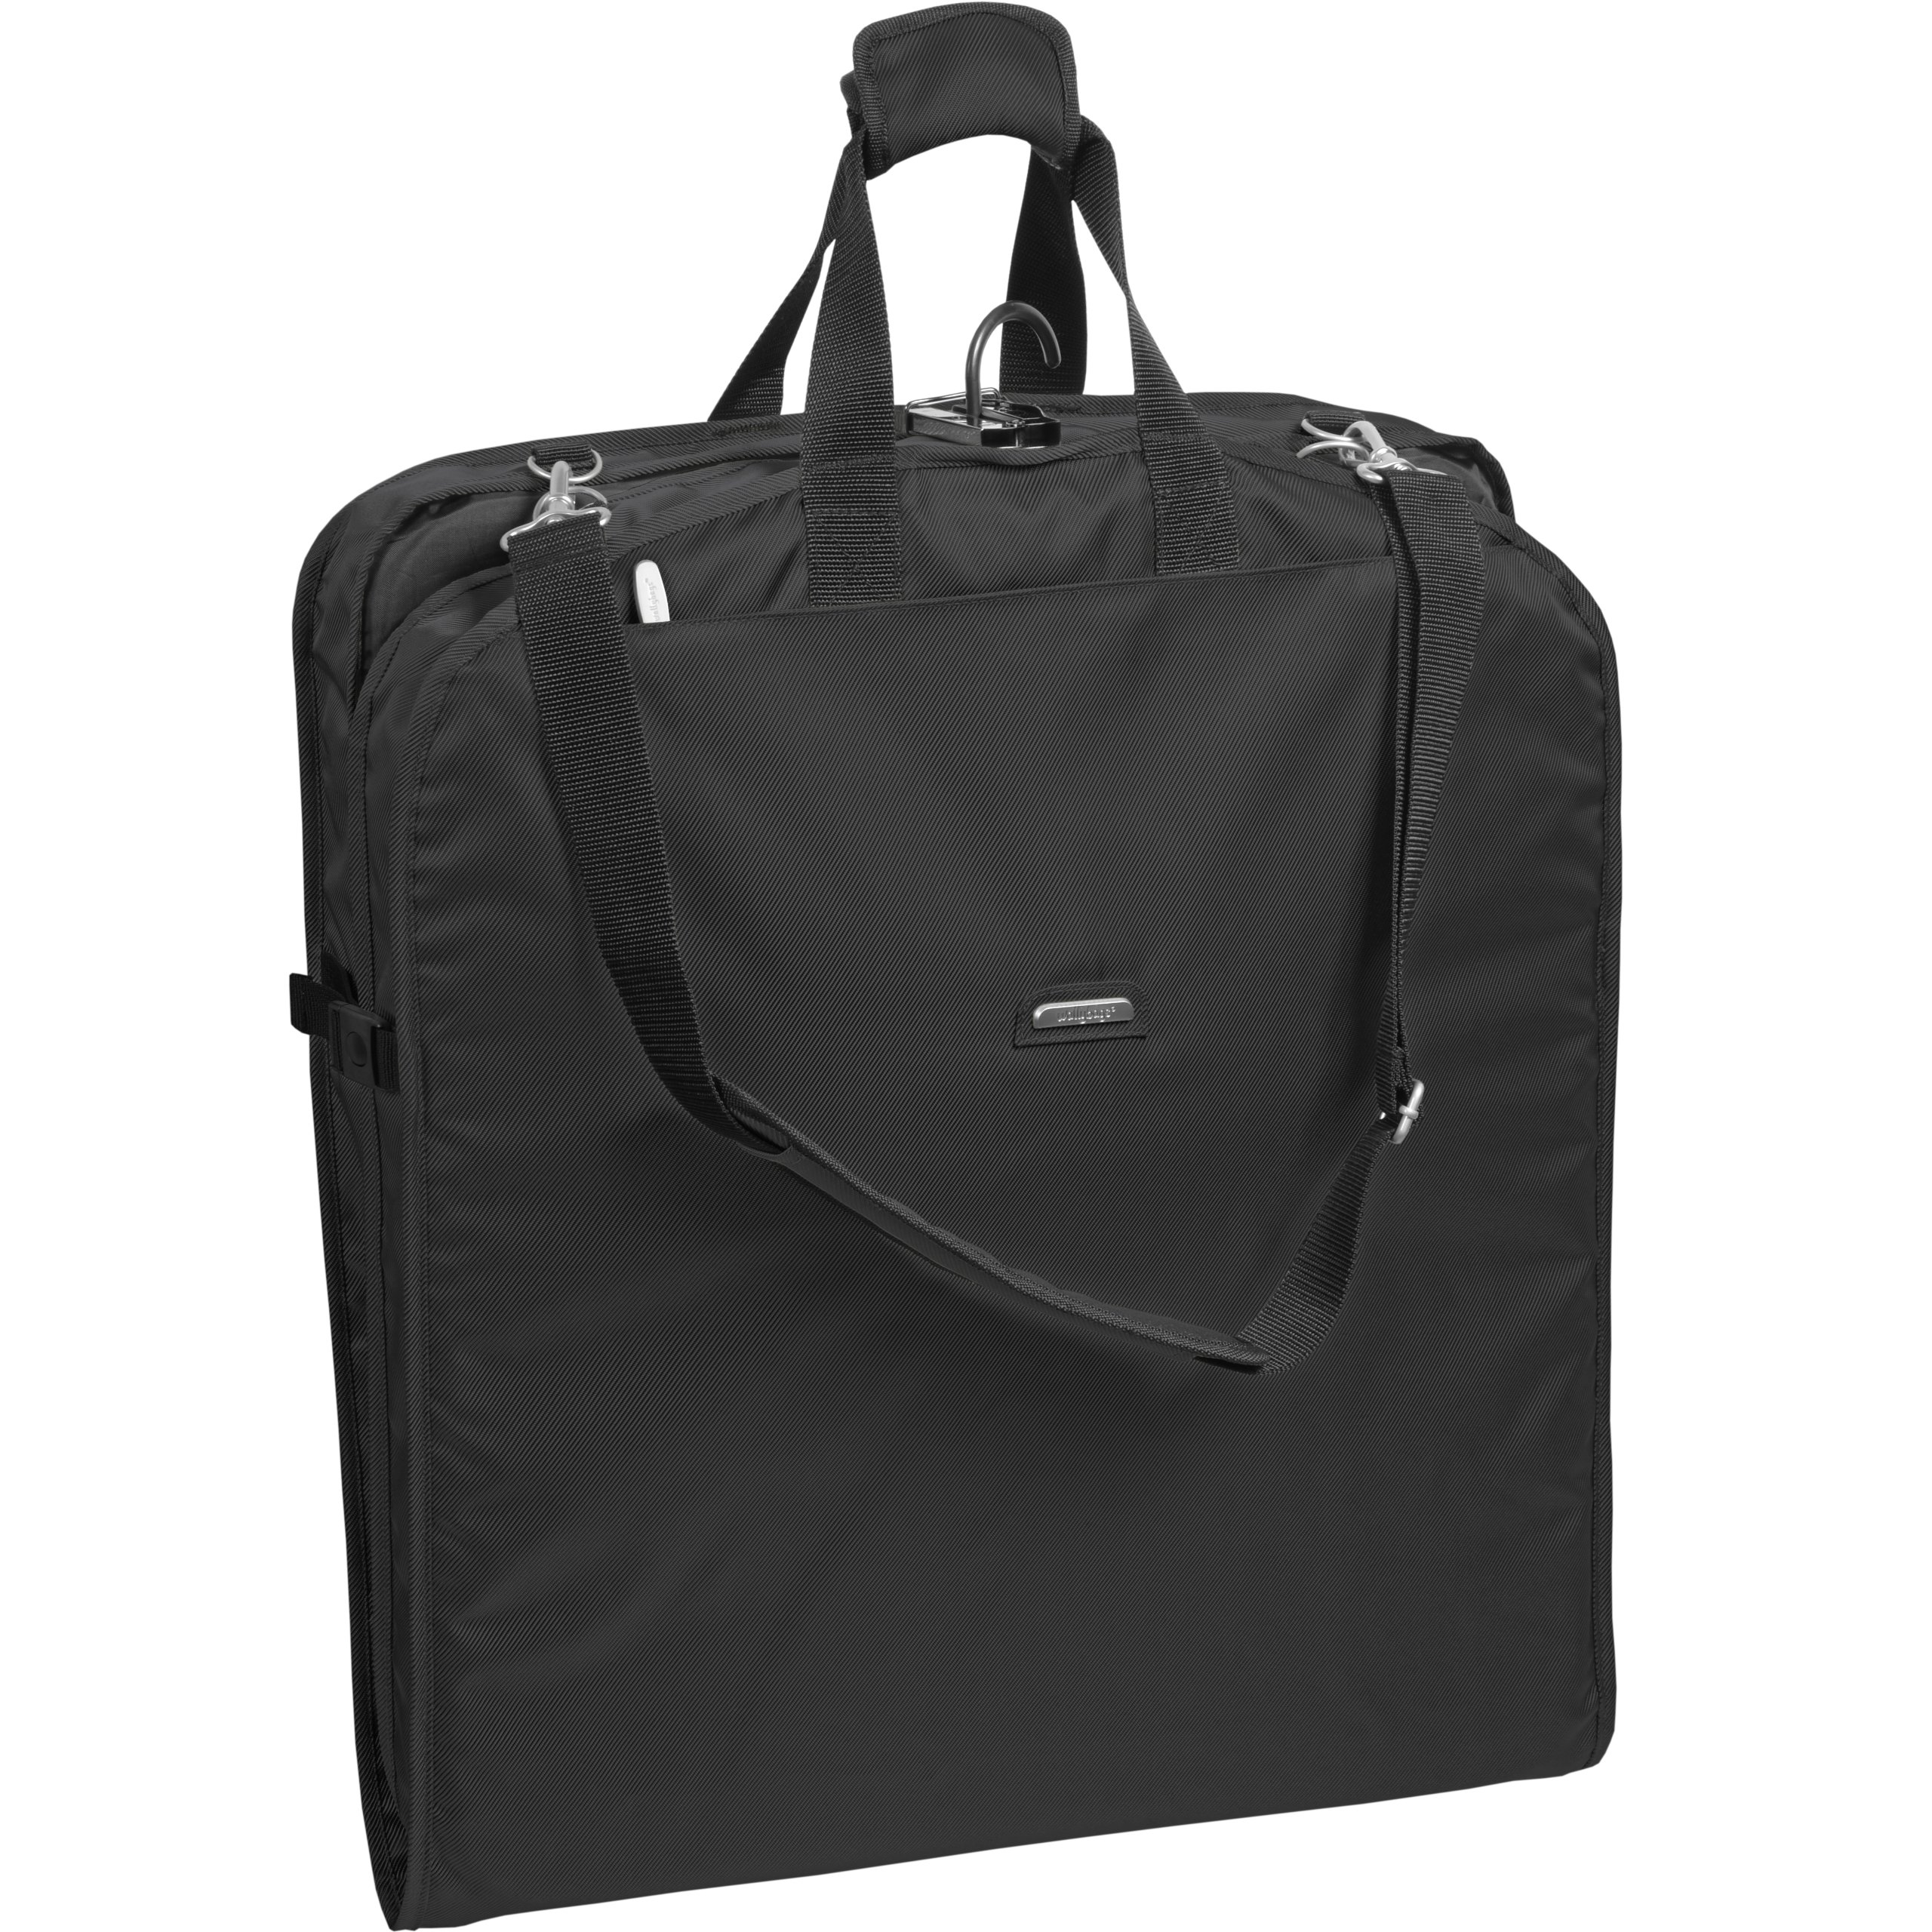 92d5c4c1e6 Best Garment Bags in 2019 - Check in   Carry on Garment Bags for Travel